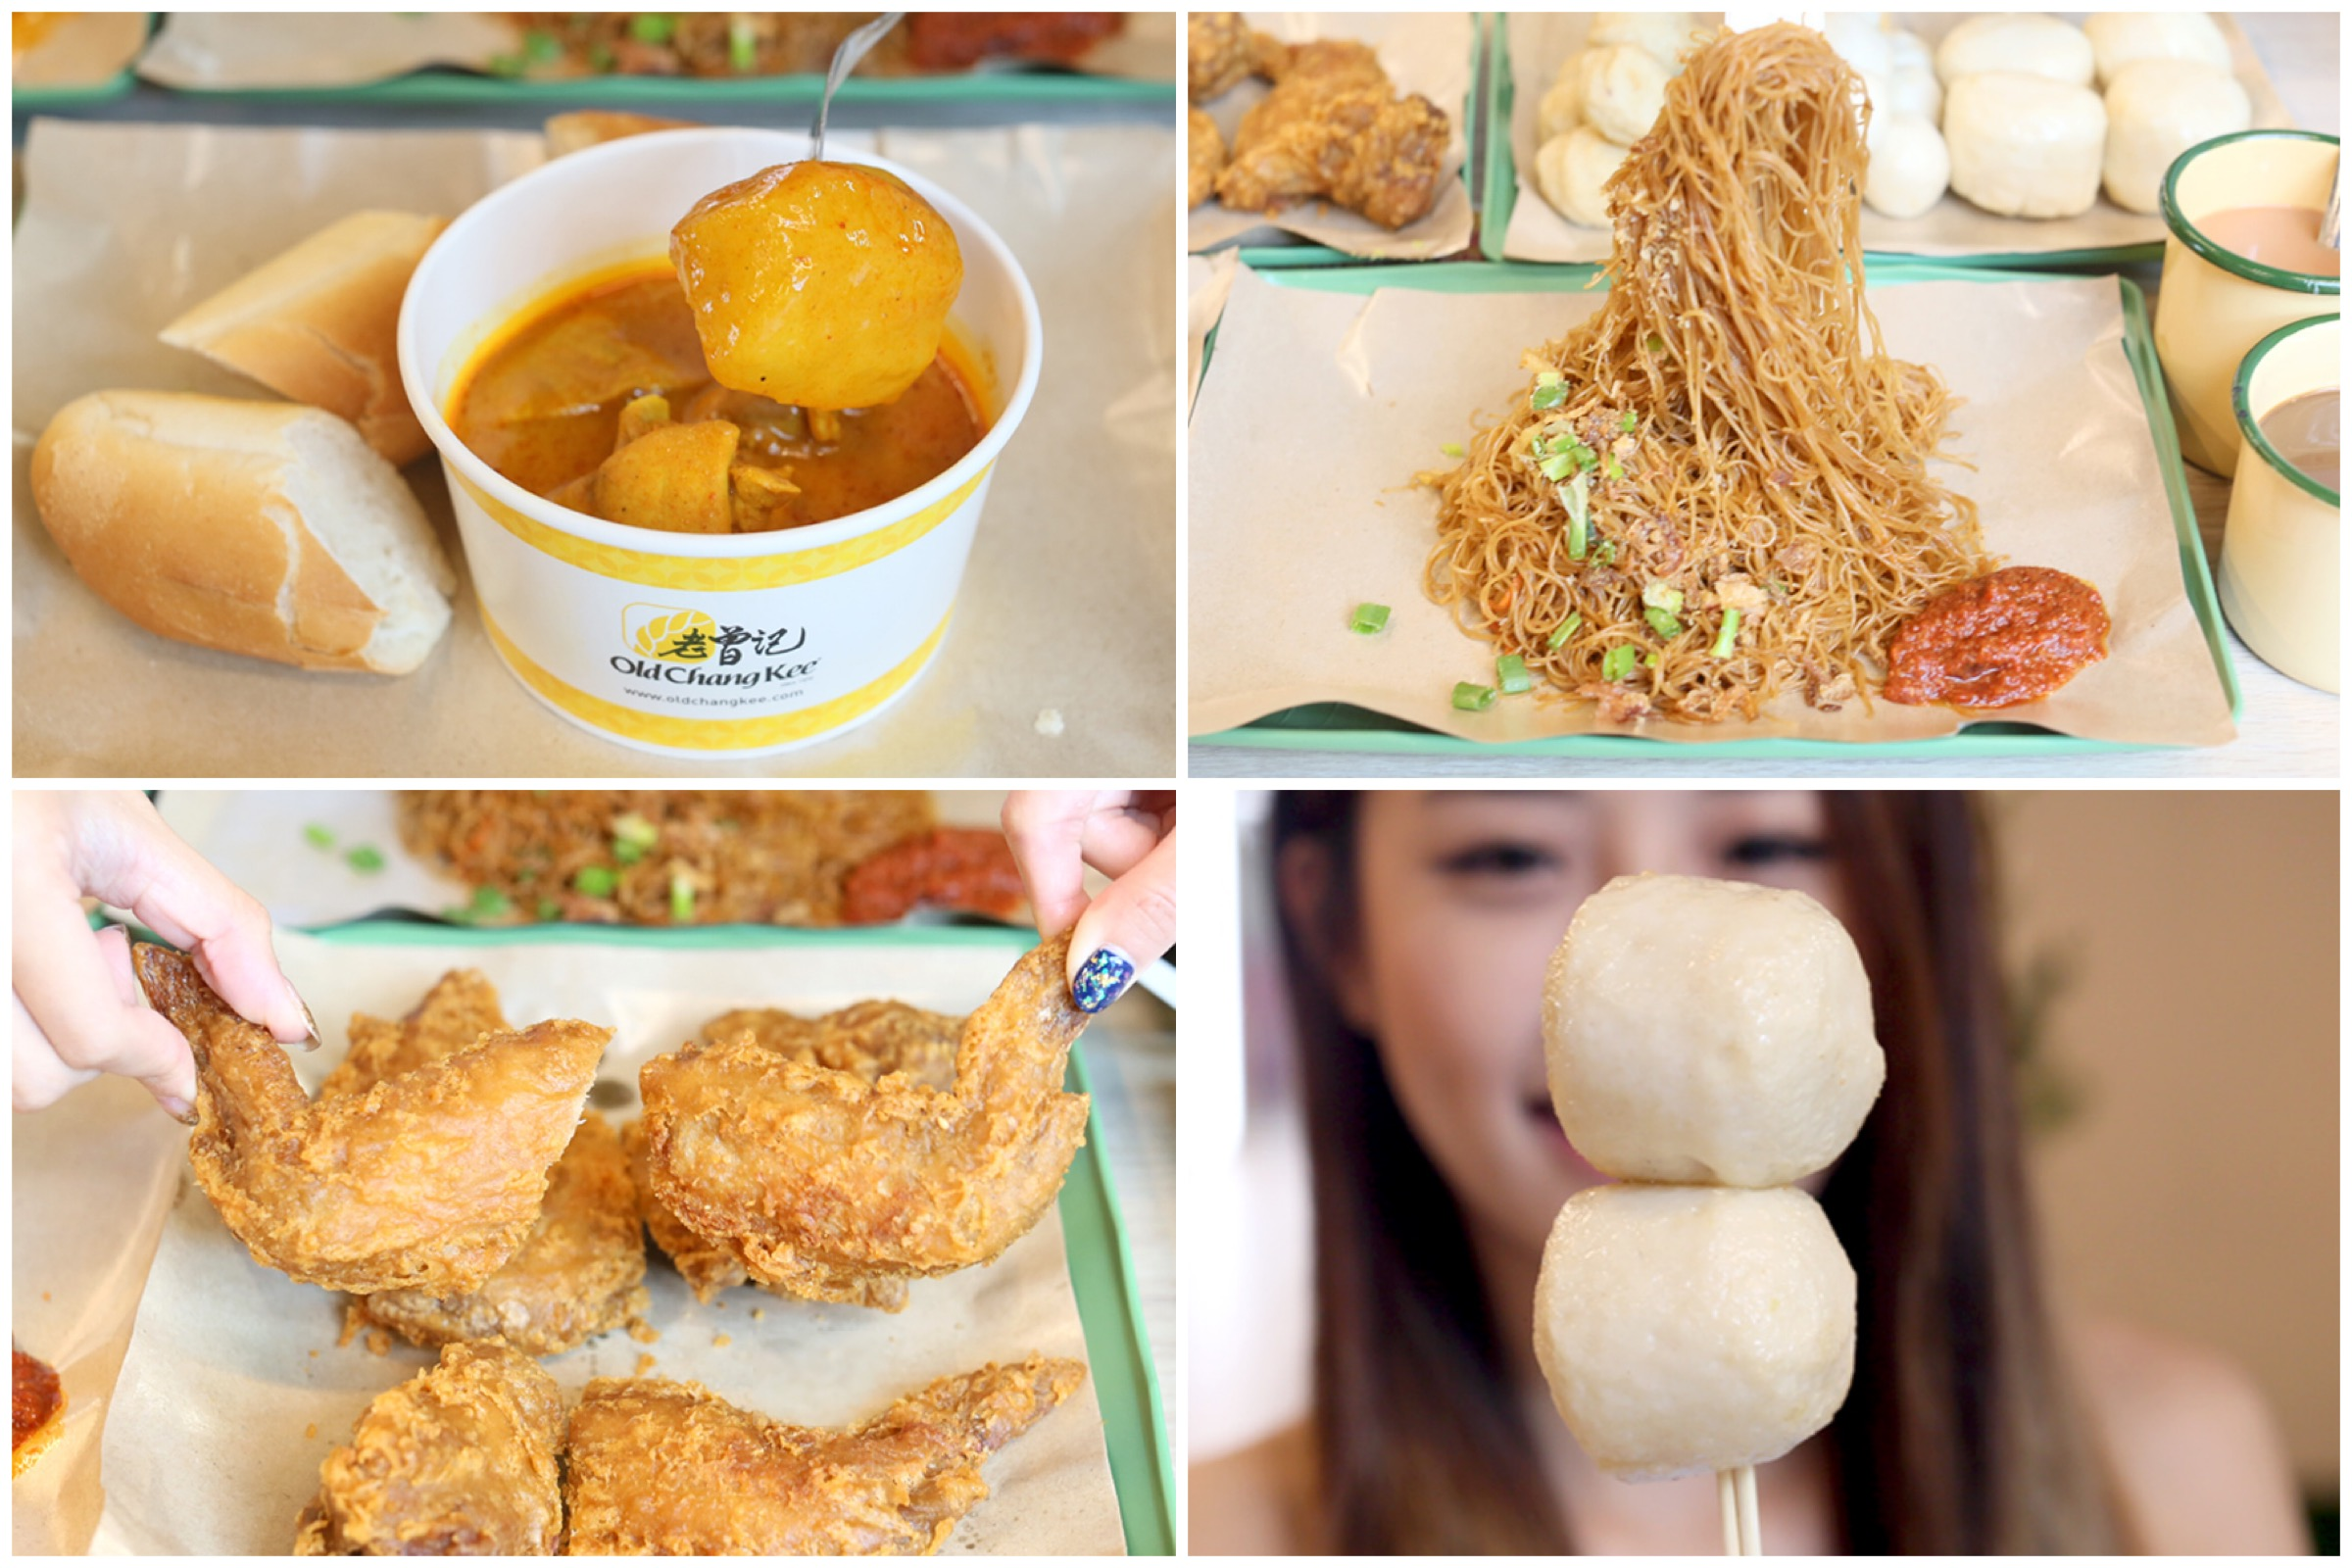 Old Chang Kee Cafe - Nasi Lemak, Bee Hoon And Favourite OCK Snacks At SingPost Centre